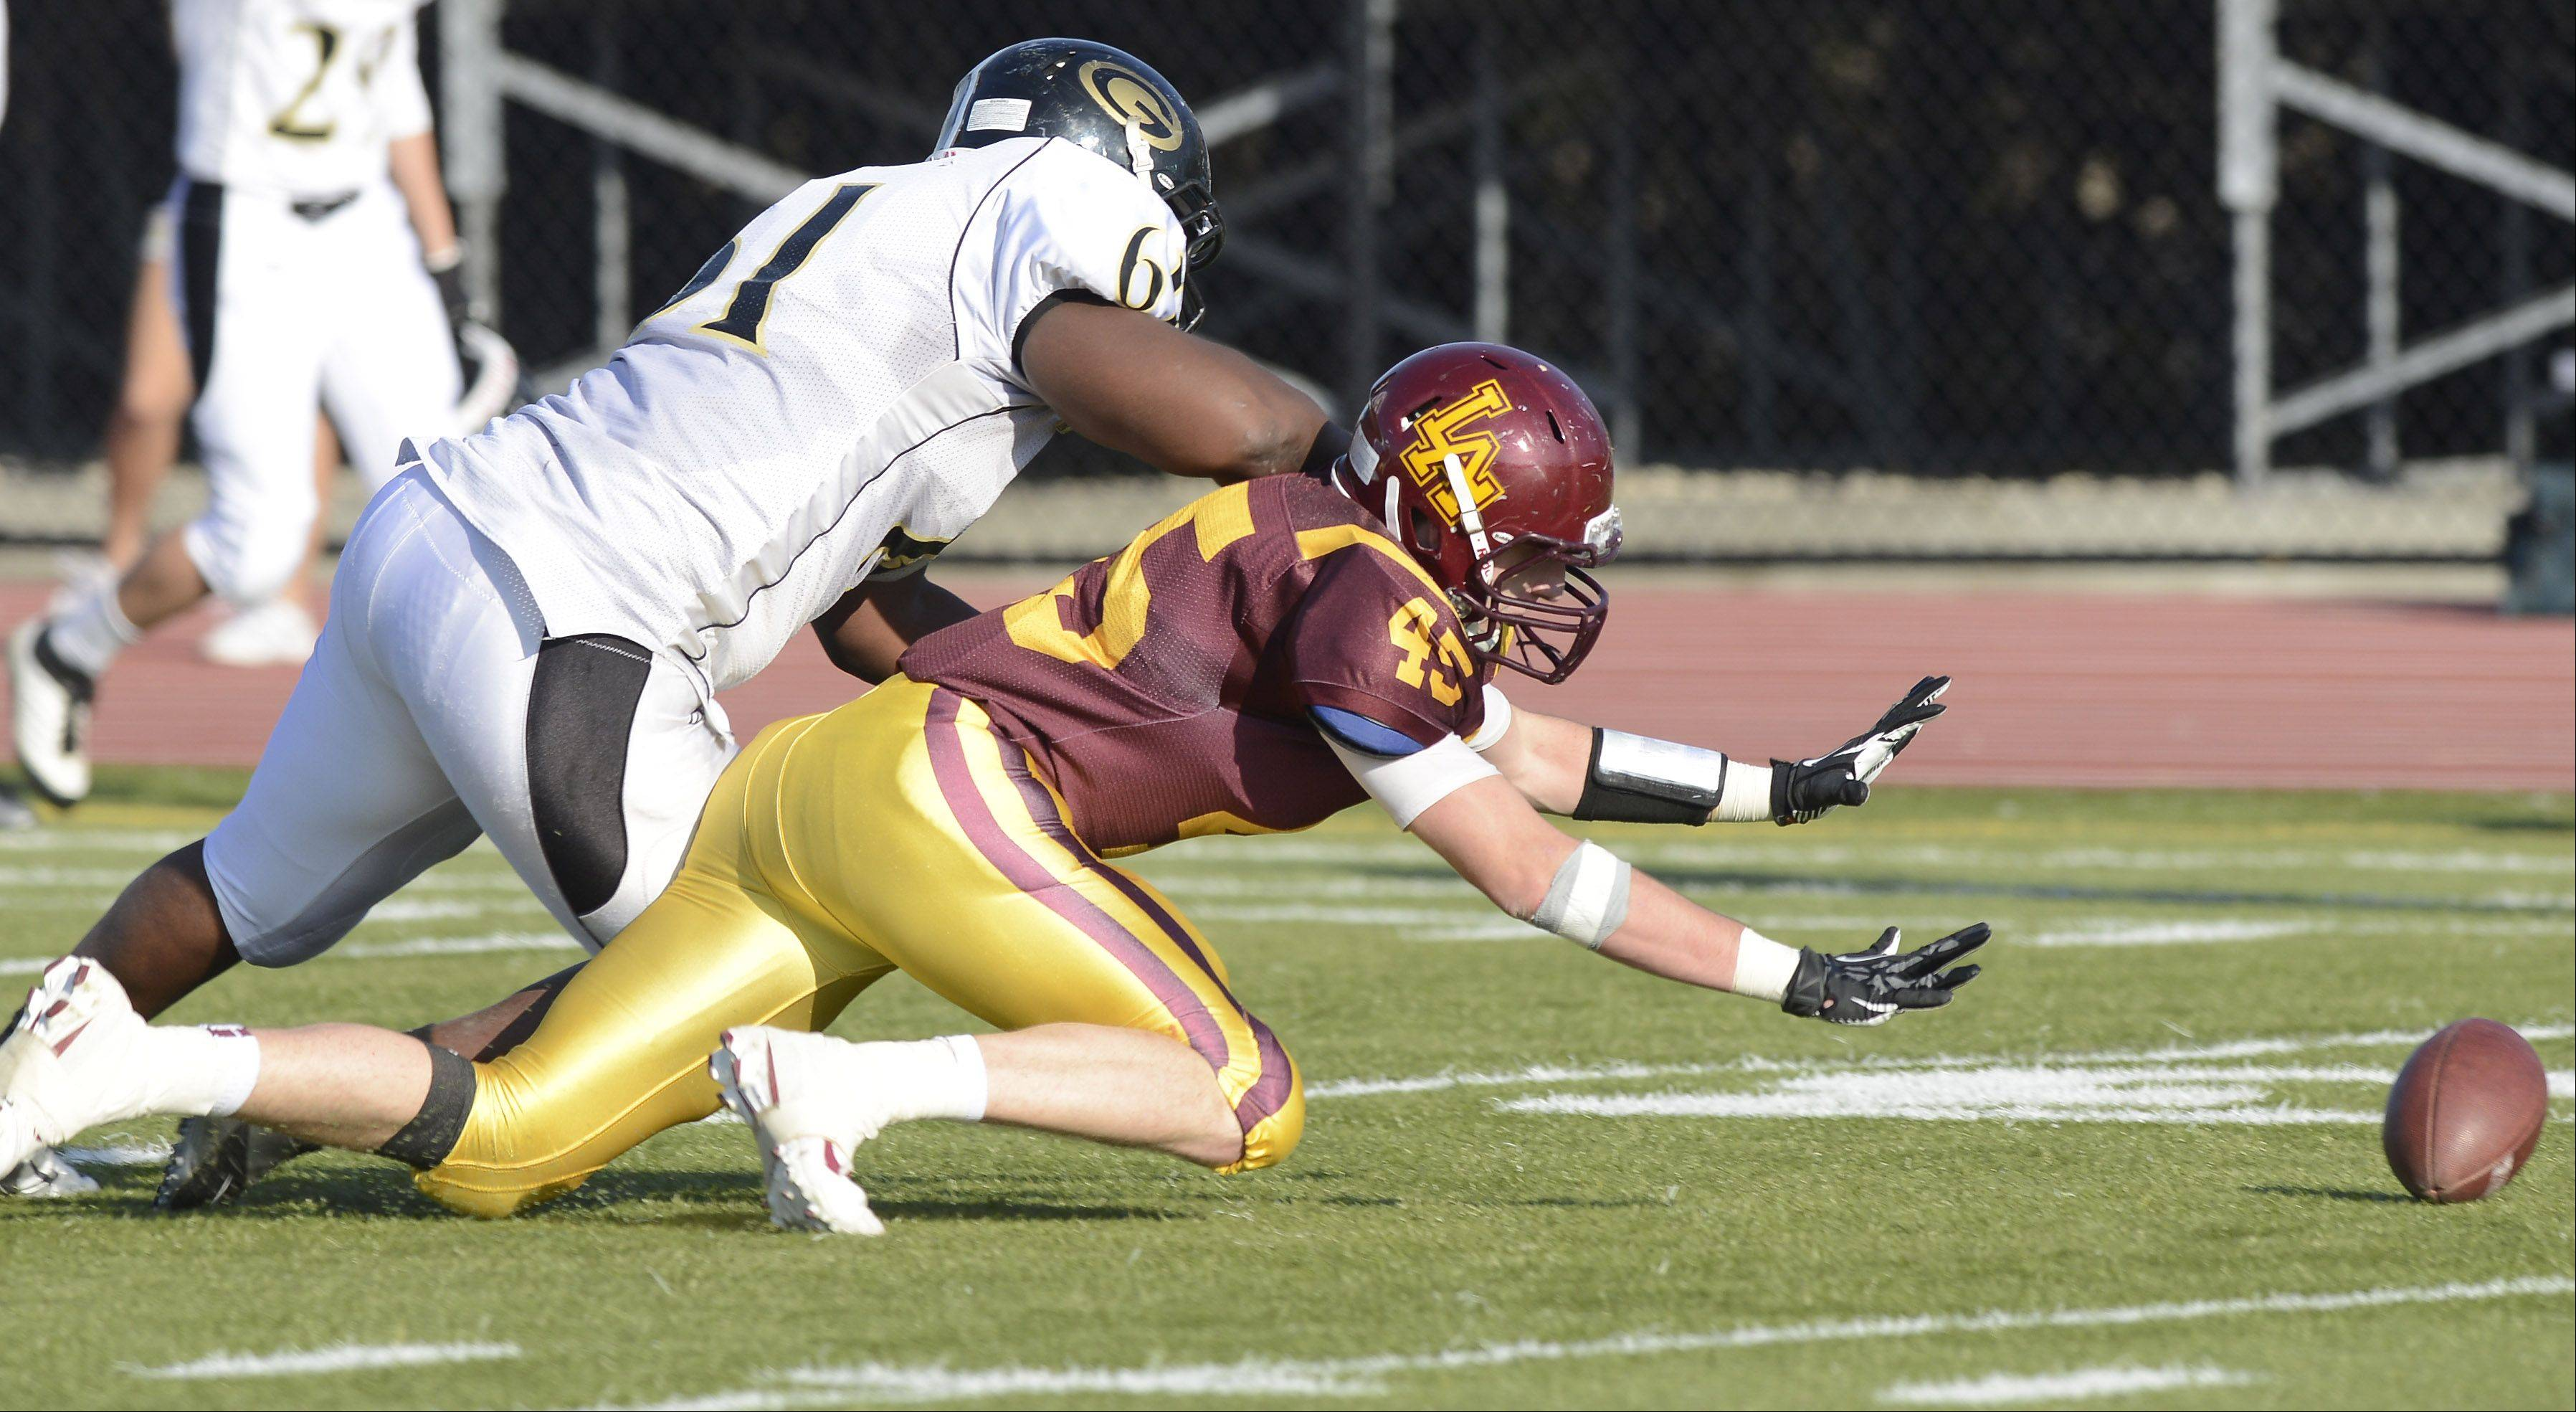 Glenbard North's D'Angelo Hodges, left, tries to fall on a fumble by his team as Loyola's James Trimble closes in on the ball during Saturday's class 8A football playoff semifinal. Glenbard North managed to recover on the play.